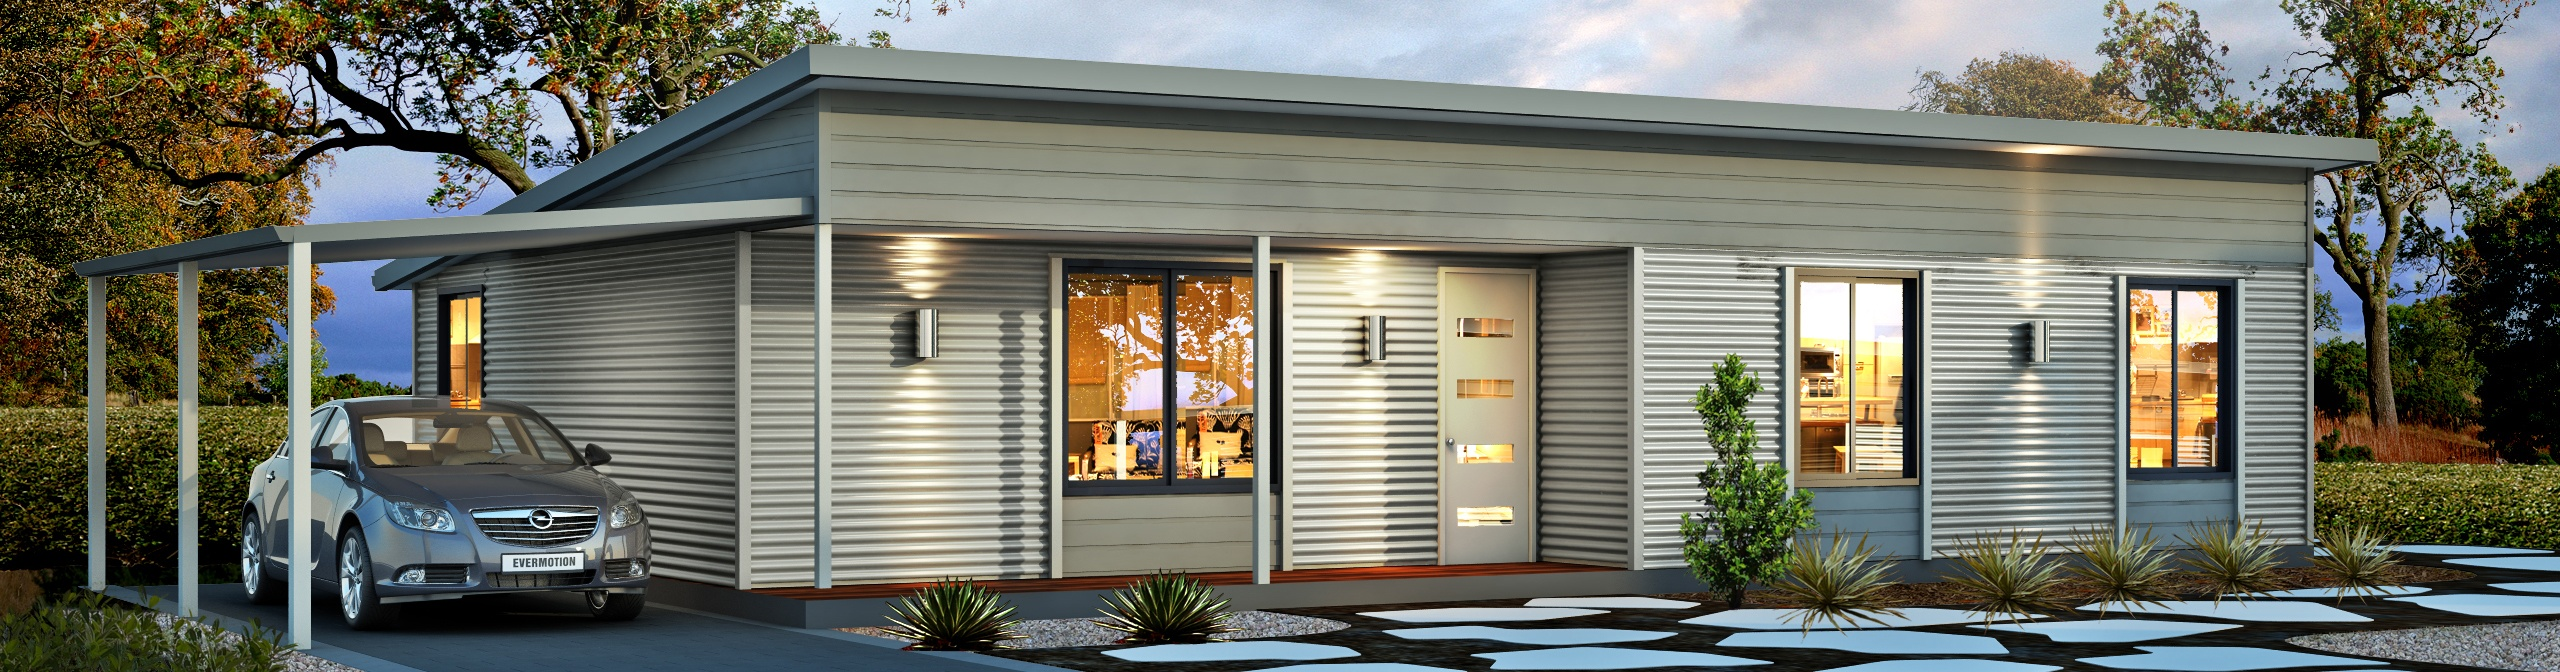 The Tuart Home Design | Evoke Living Homes